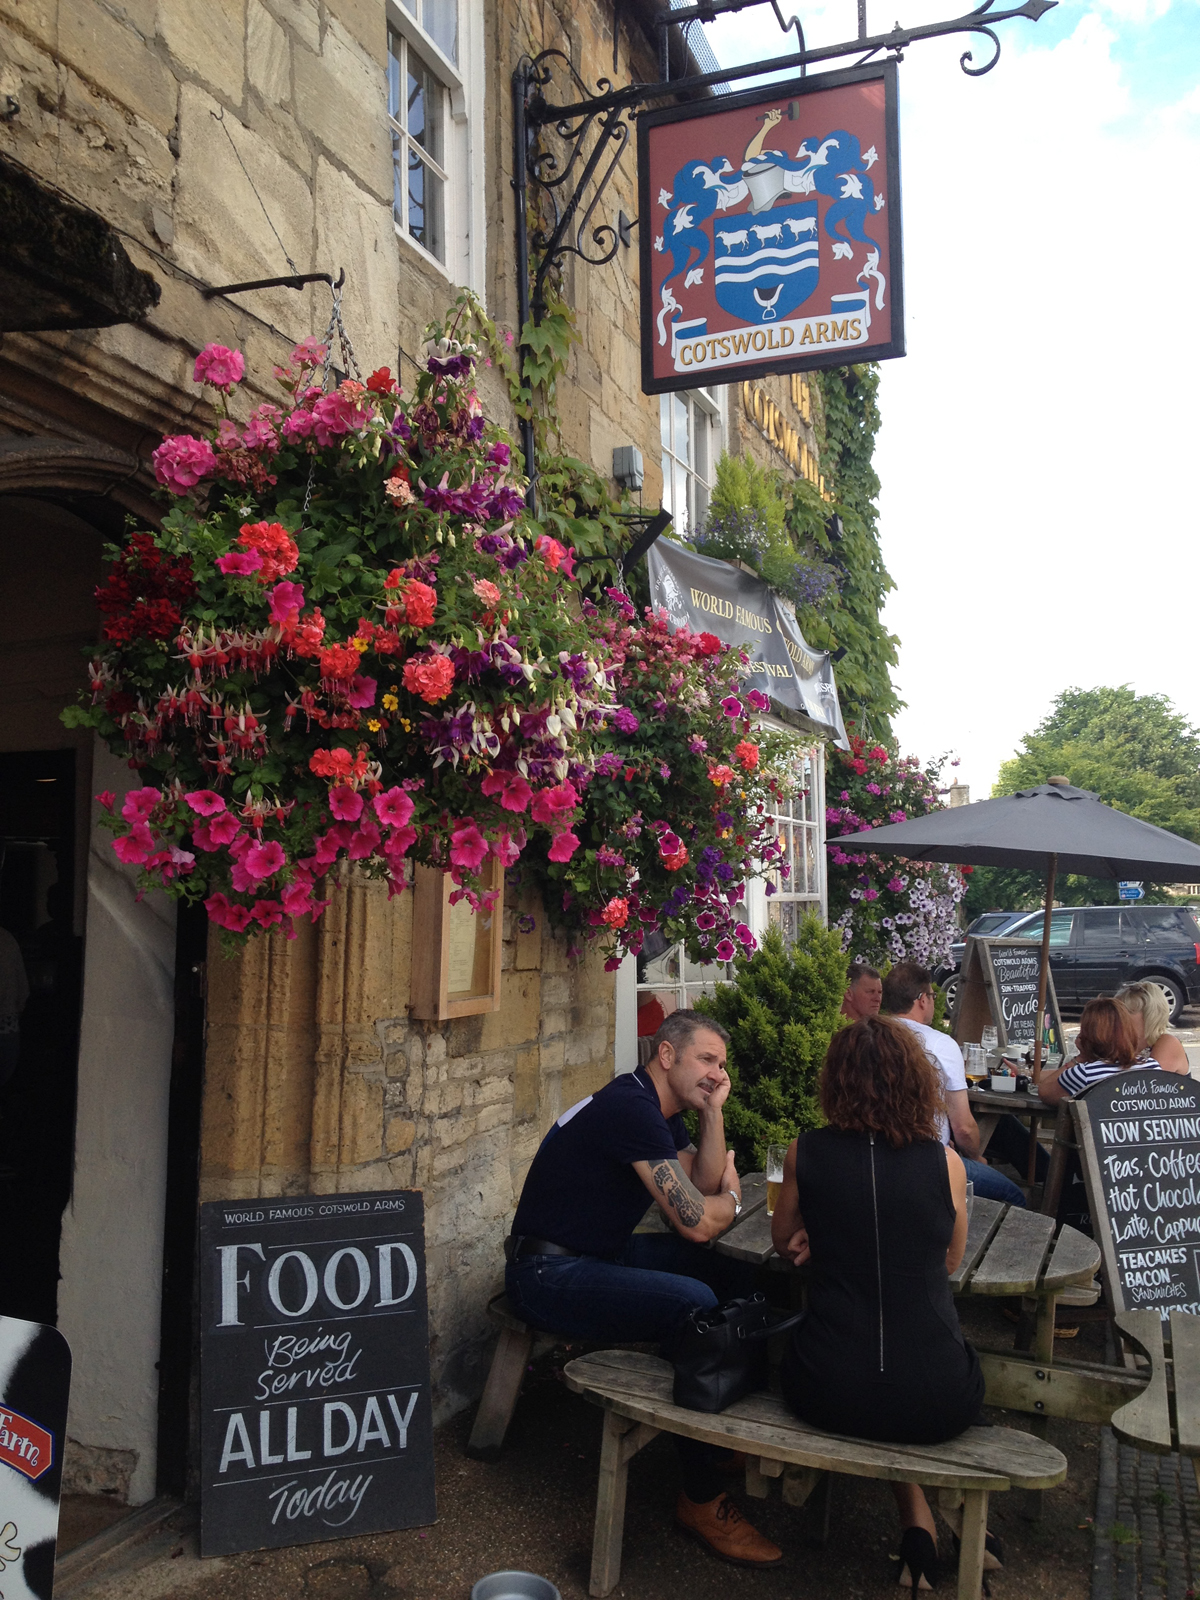 Cotswold Arms Pub in Burford Old World Village